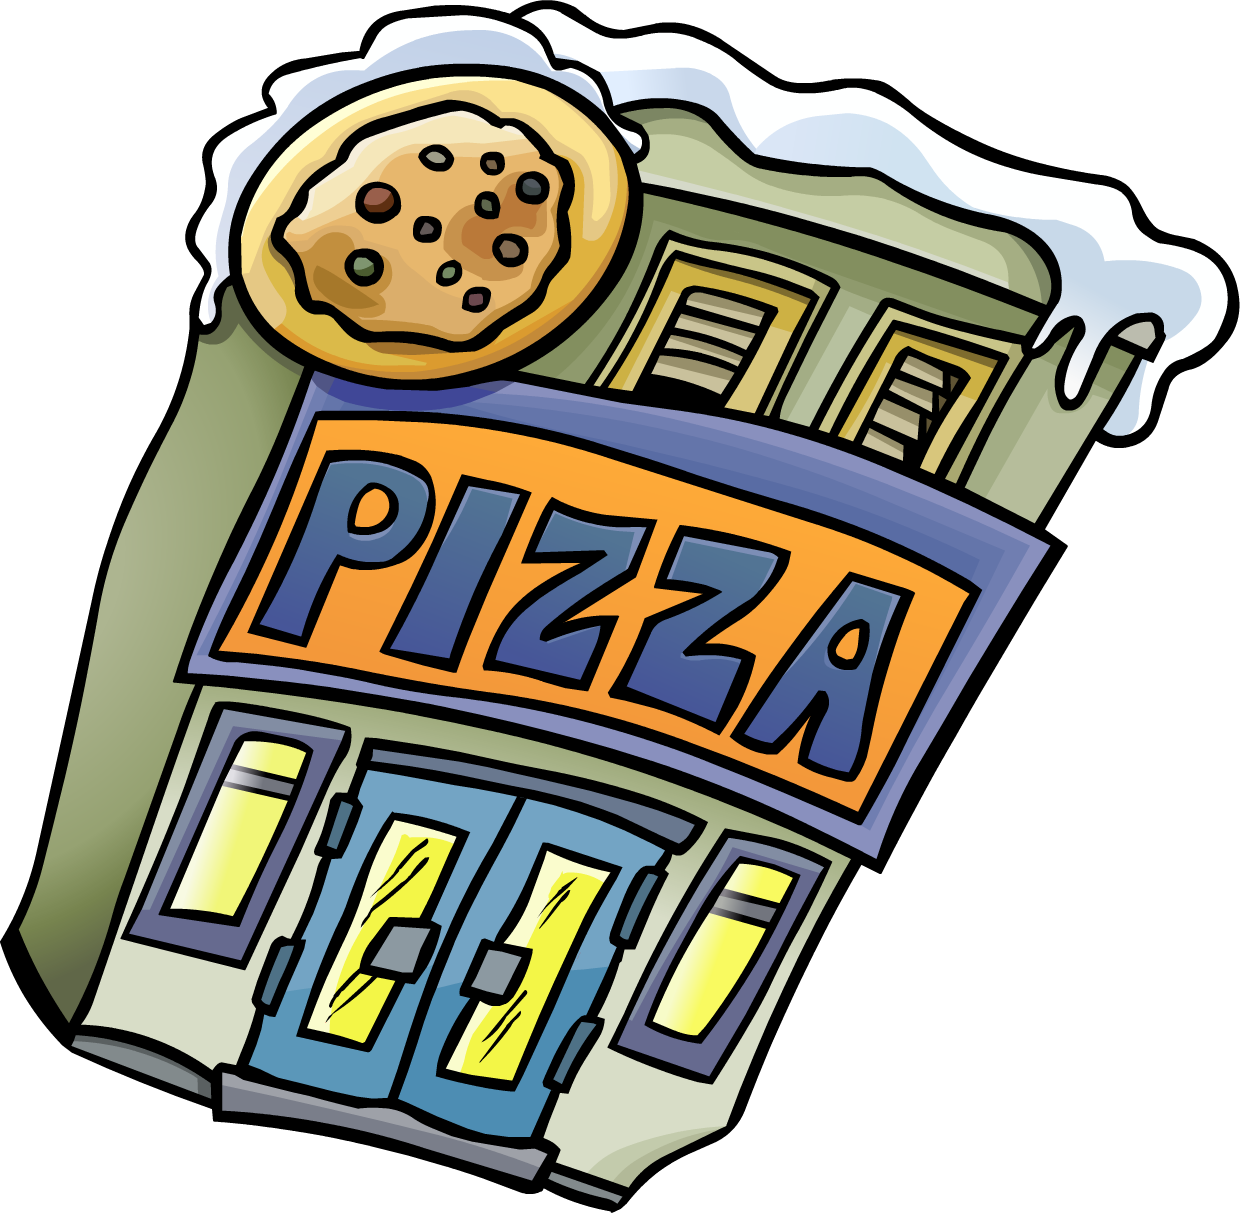 File:OldPizzaParlor.png